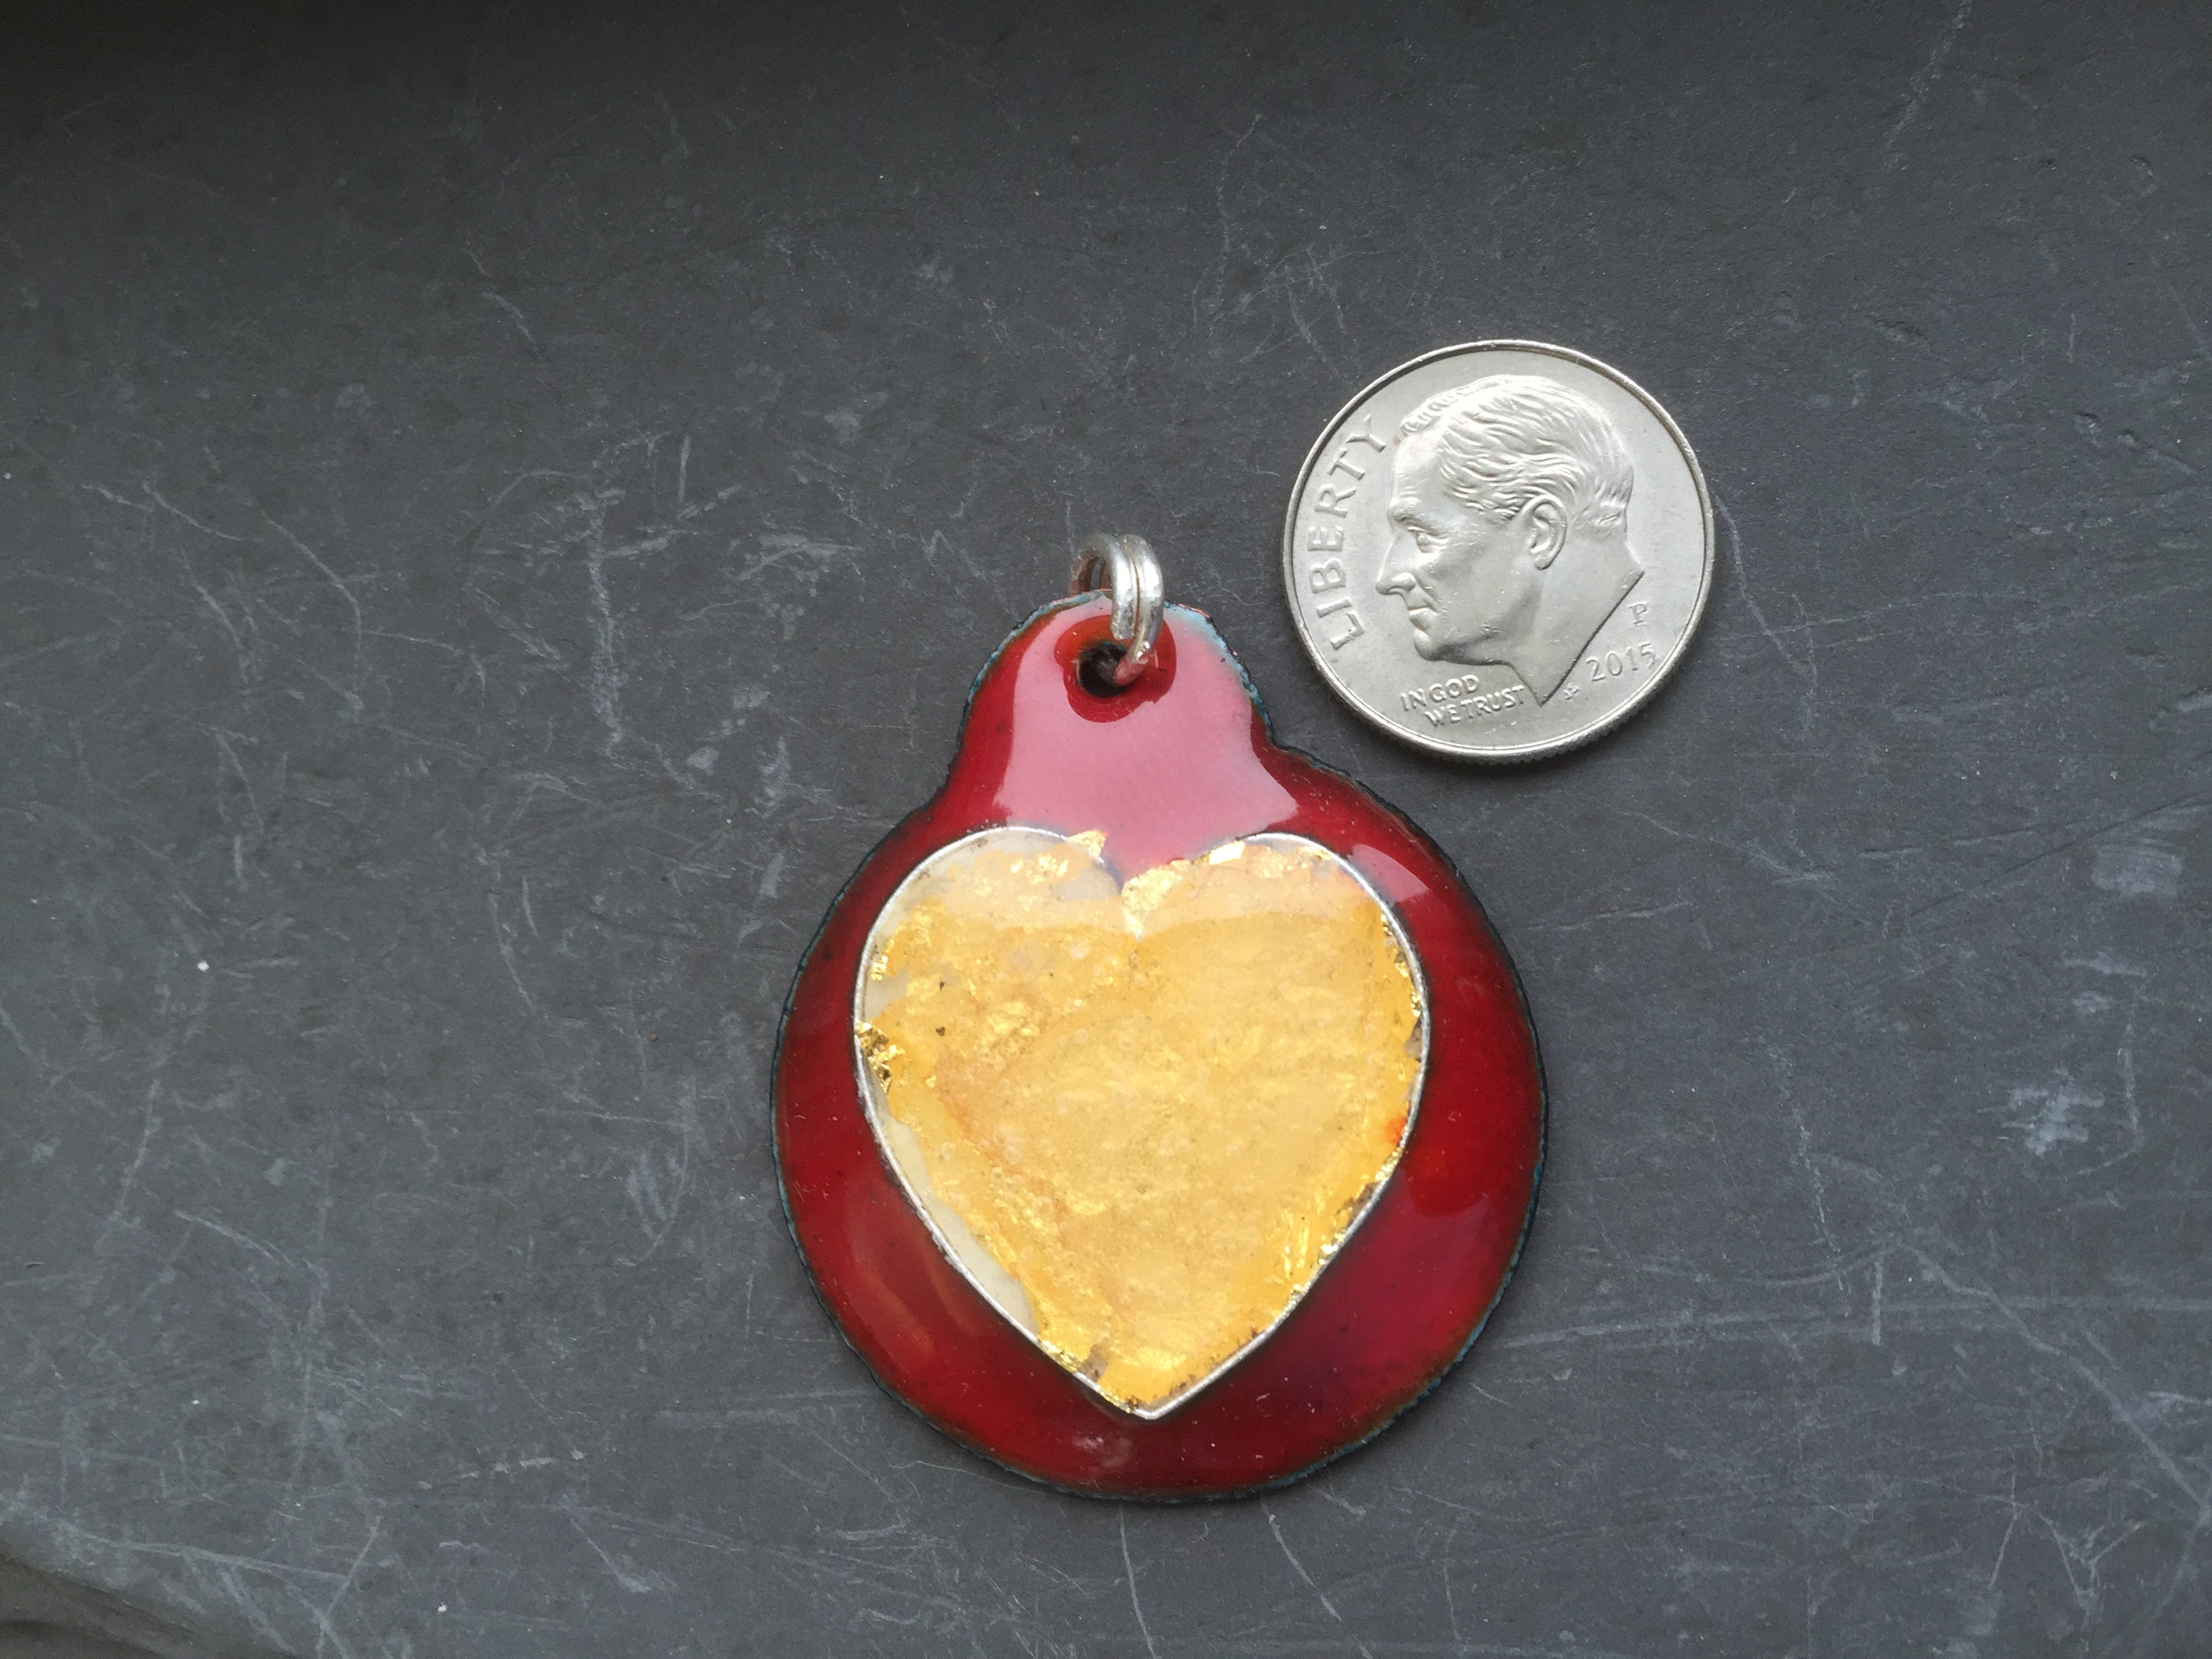 Cloisonne' Pendant - Heart of Pure Gold on Red